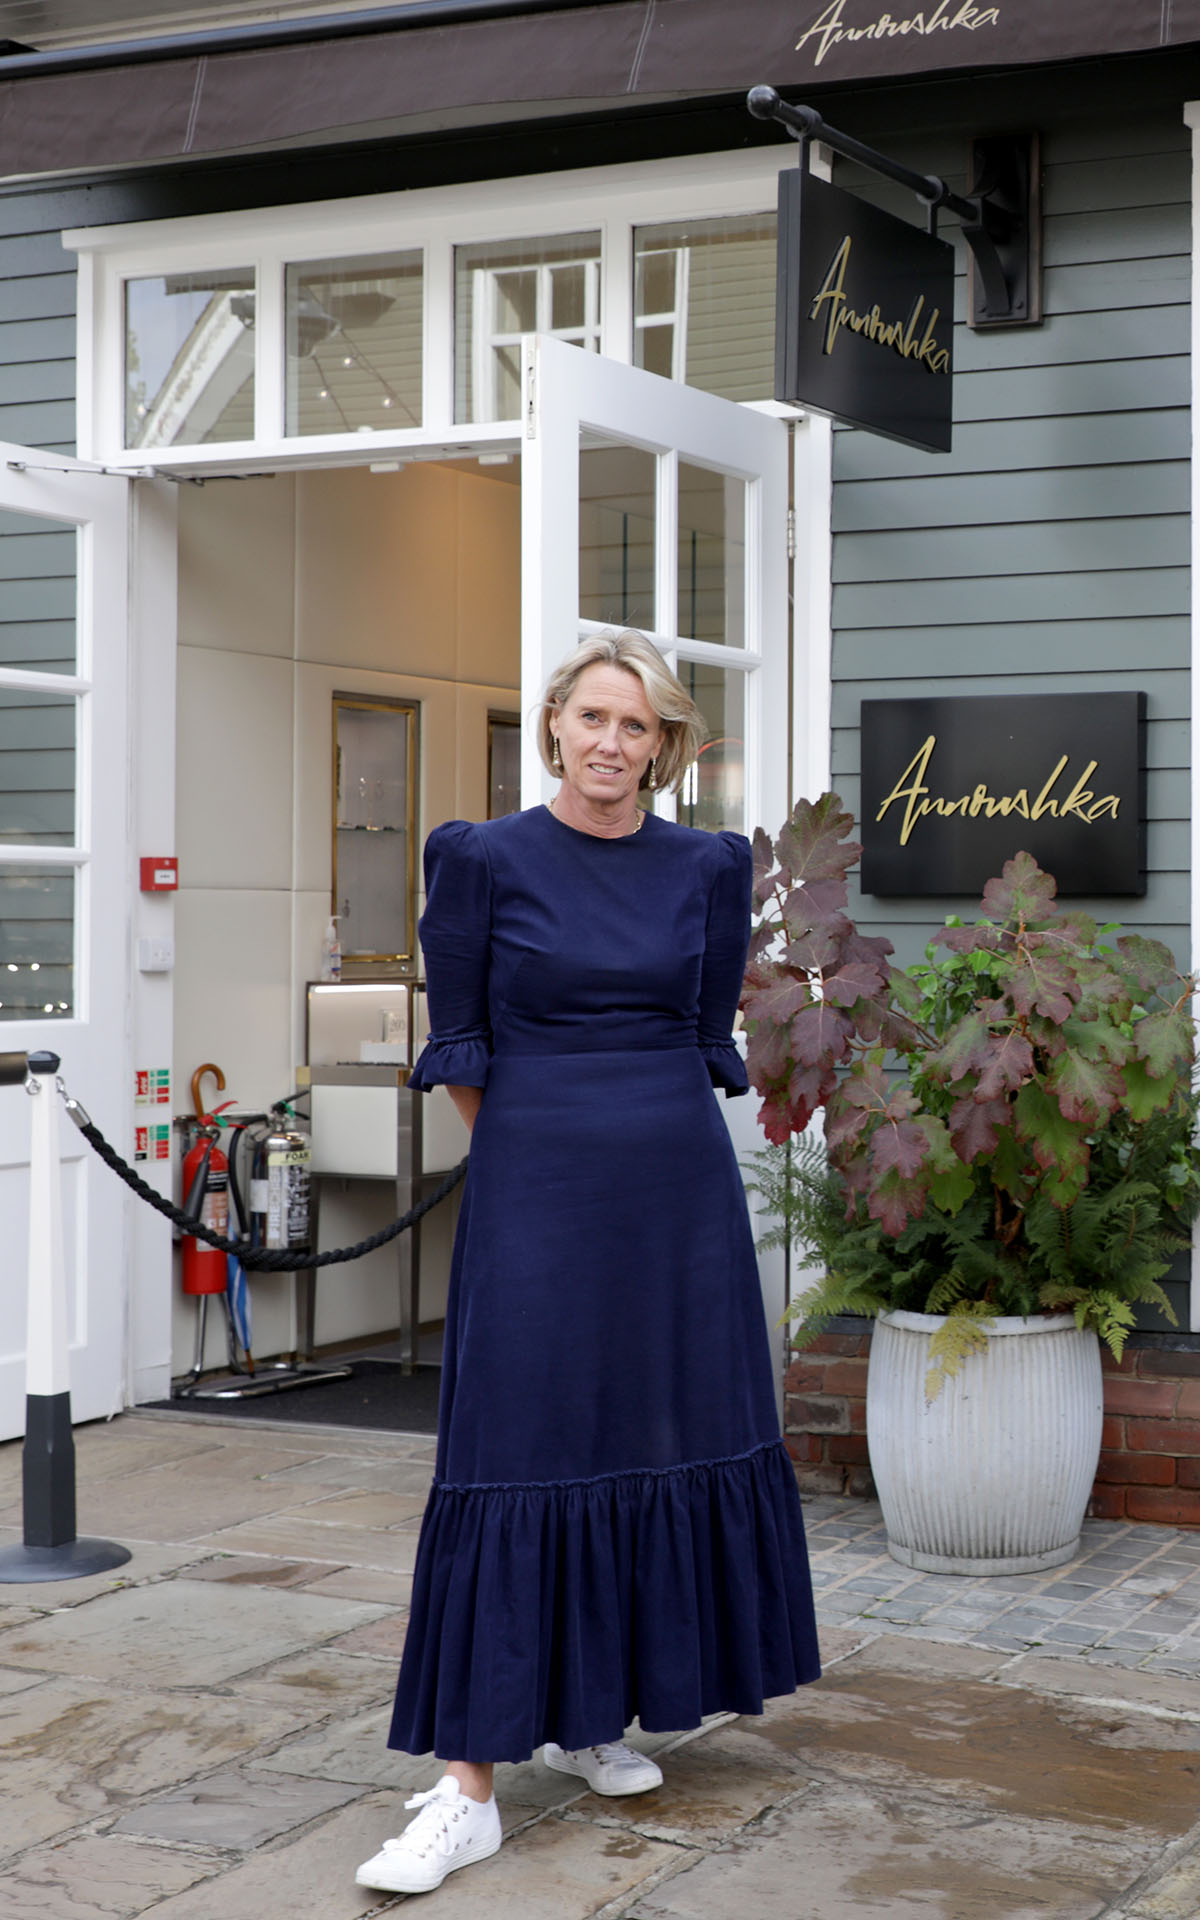 Annoushka at Bicester Village